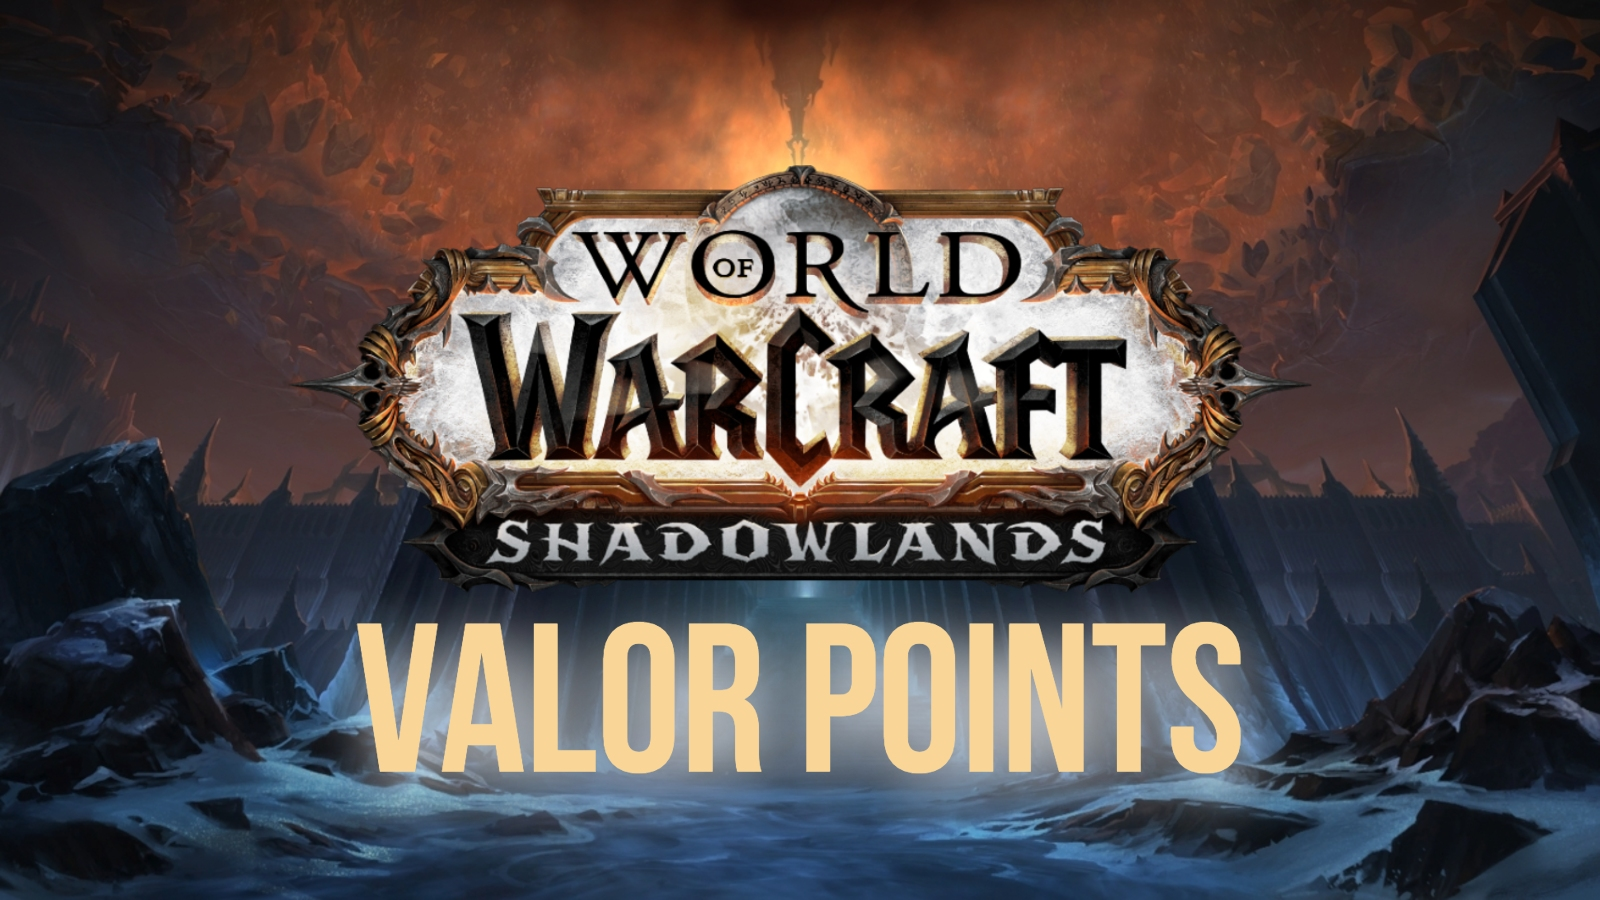 WoW World of Warcraft Shadowlands Valor Points Guide